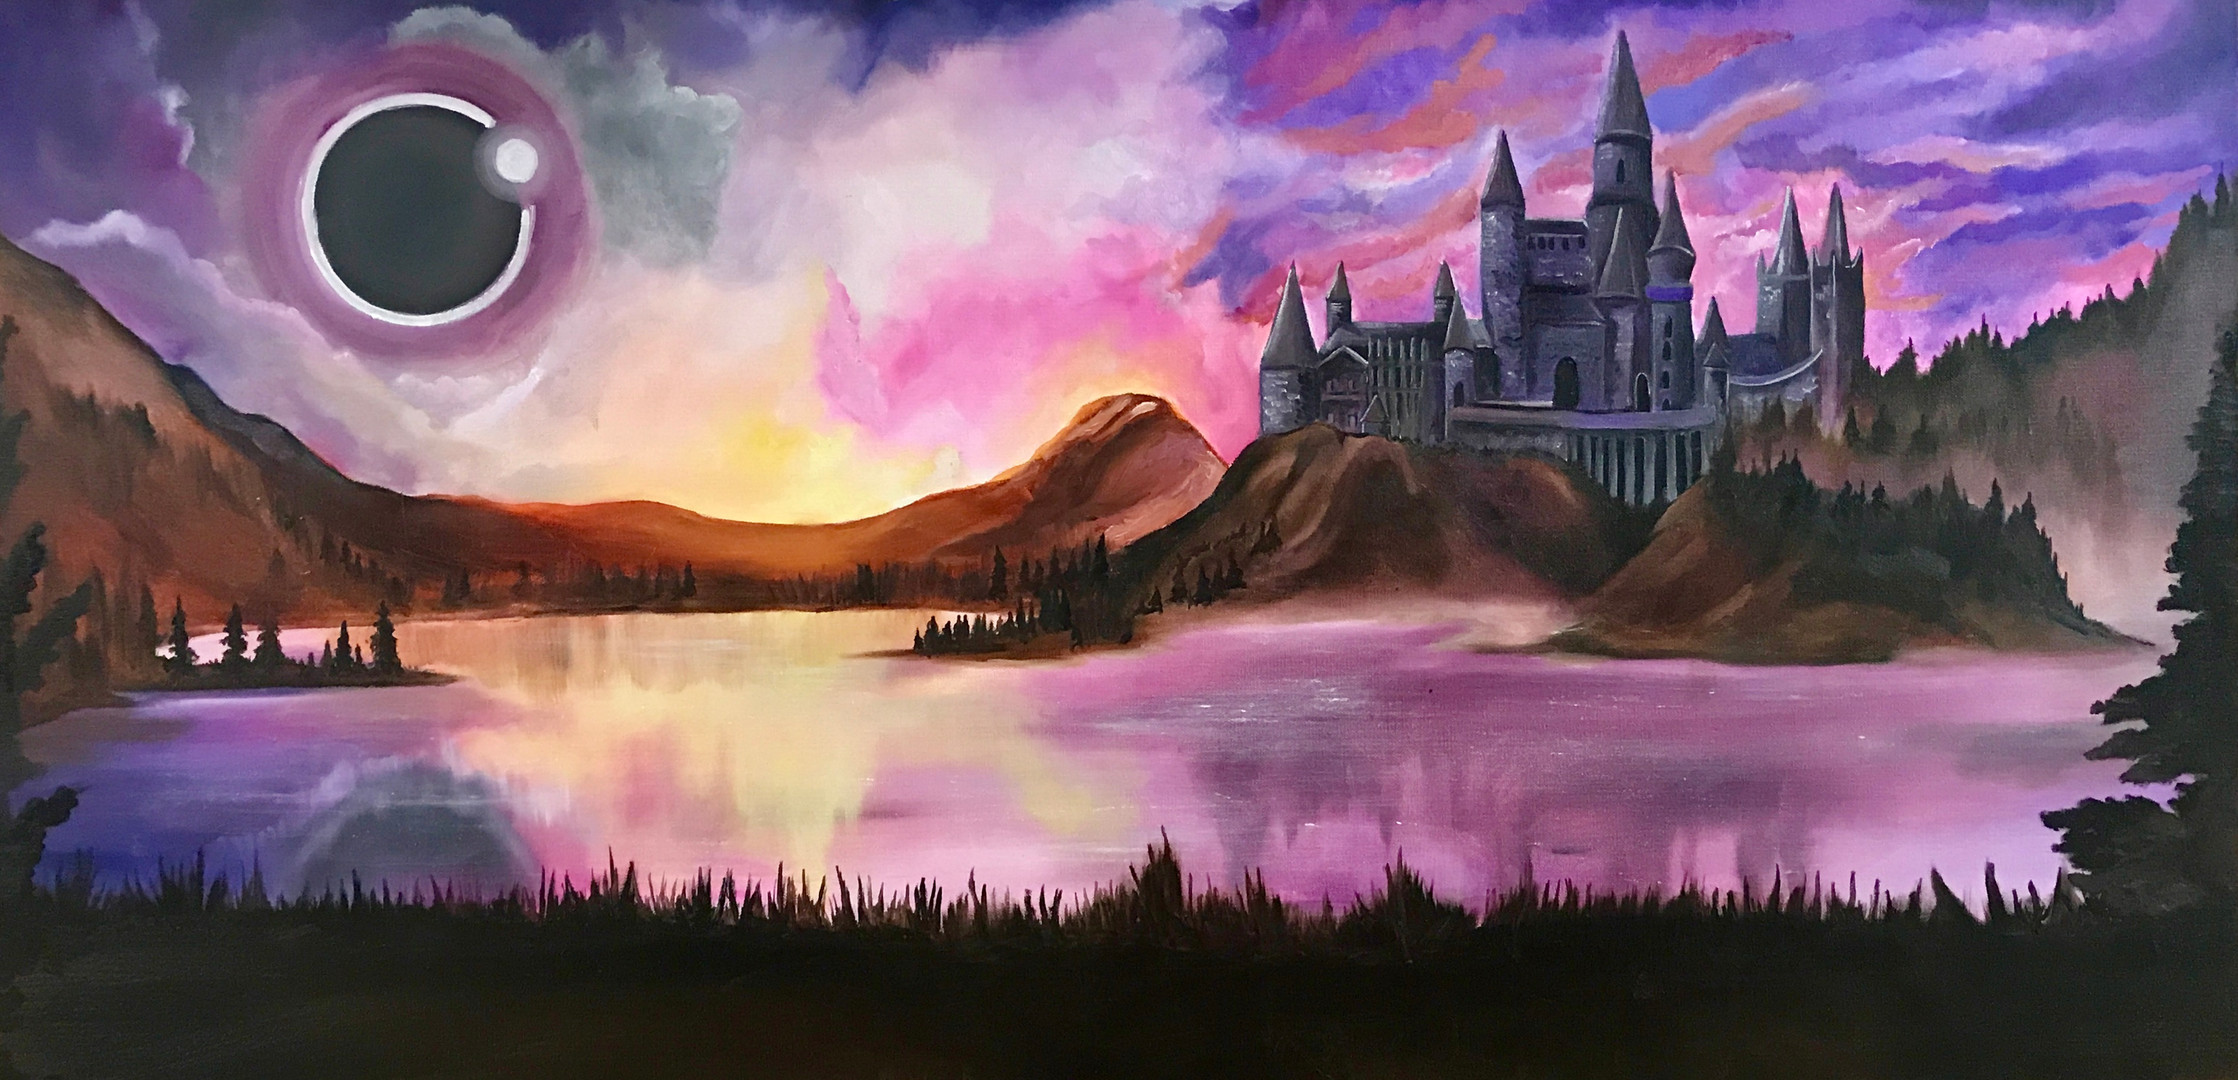 Eclipsed Castle